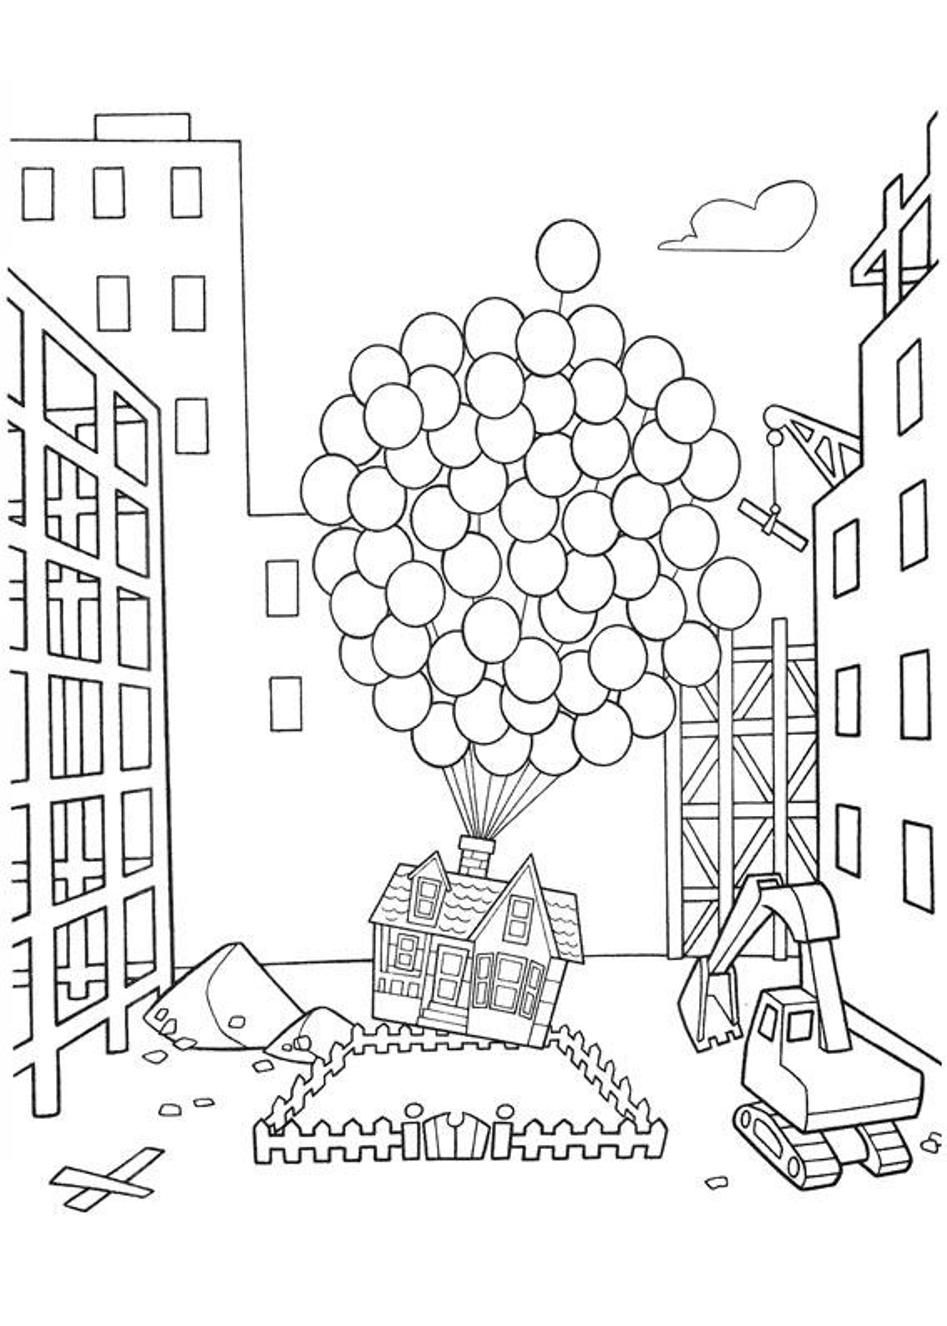 - Up Coloring Pages : Up Coloring Pages Printable. Up Coloring Pages